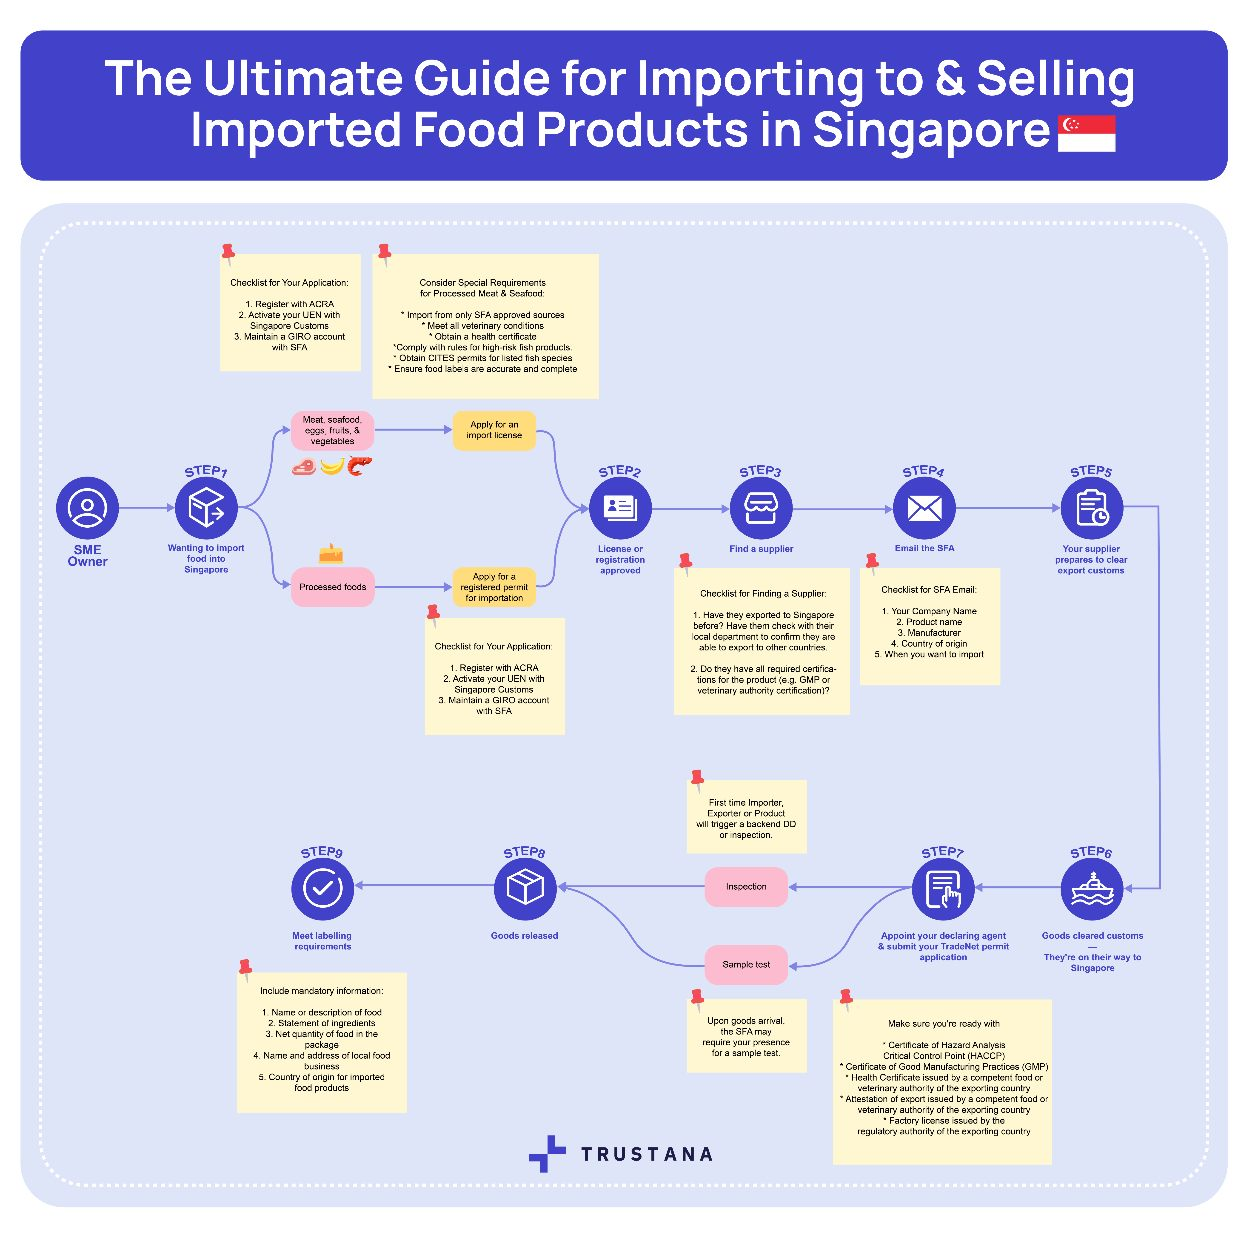 Step-By-Step Guide For Importing to & Selling Imported Food Products in Singapore